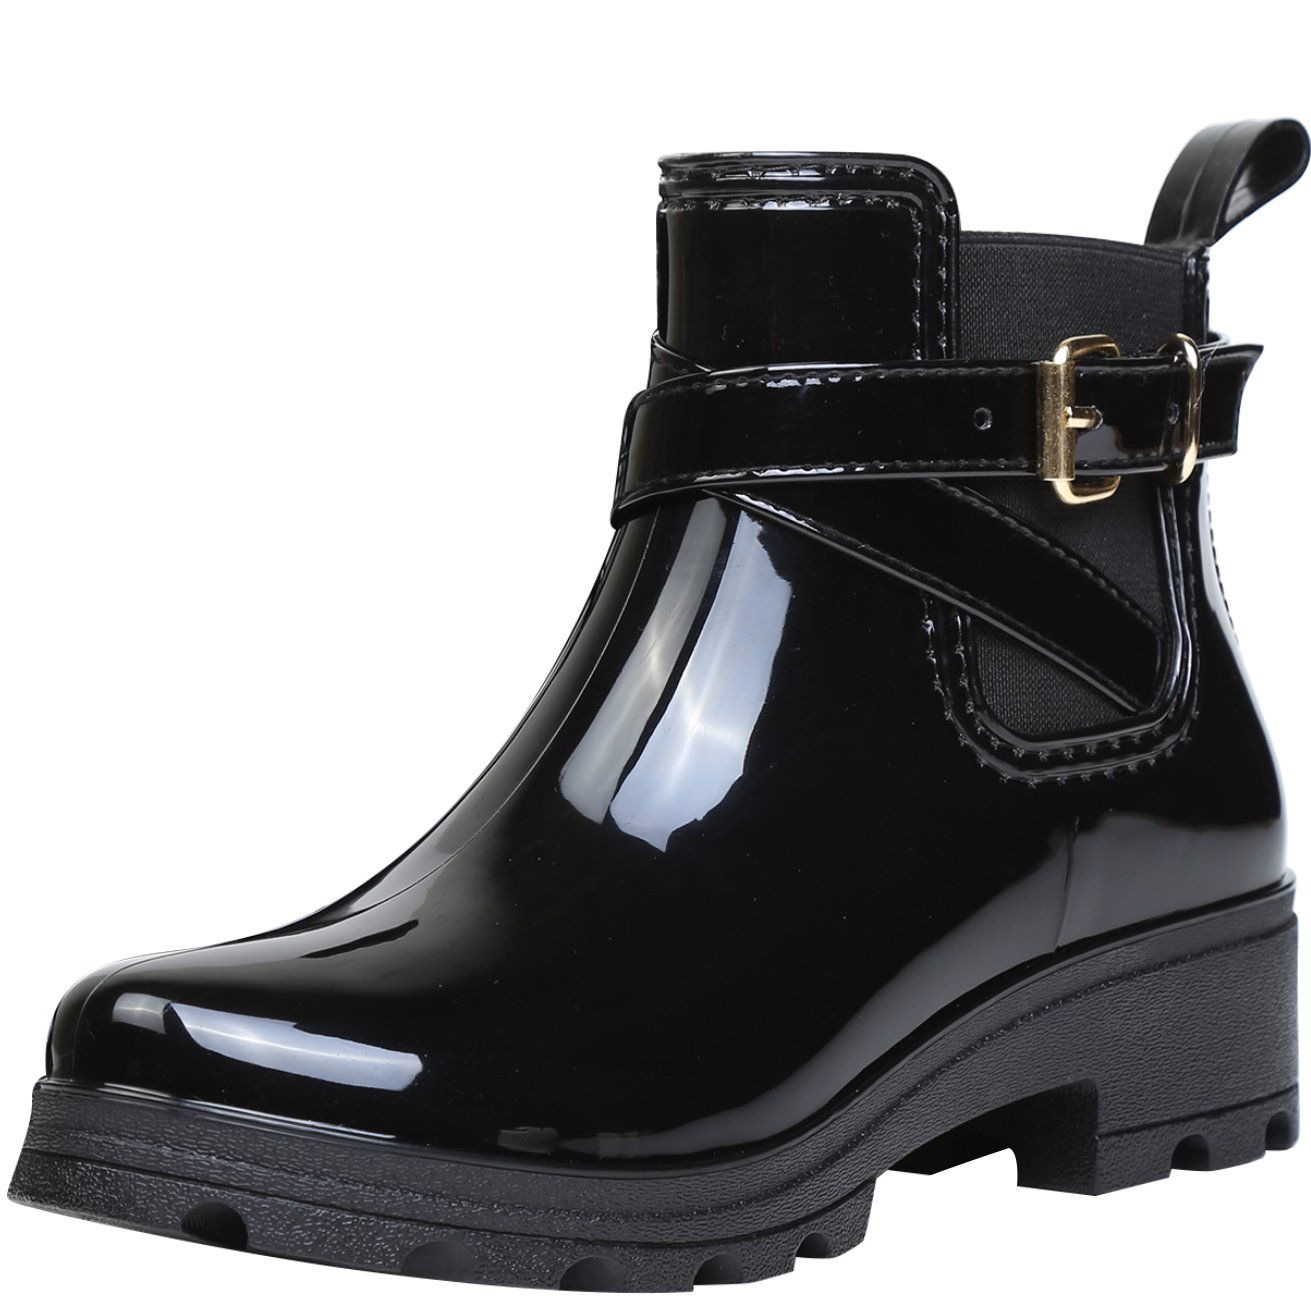 ukStore Chaussures d'hiver Unisexes Bottes antidérapantes